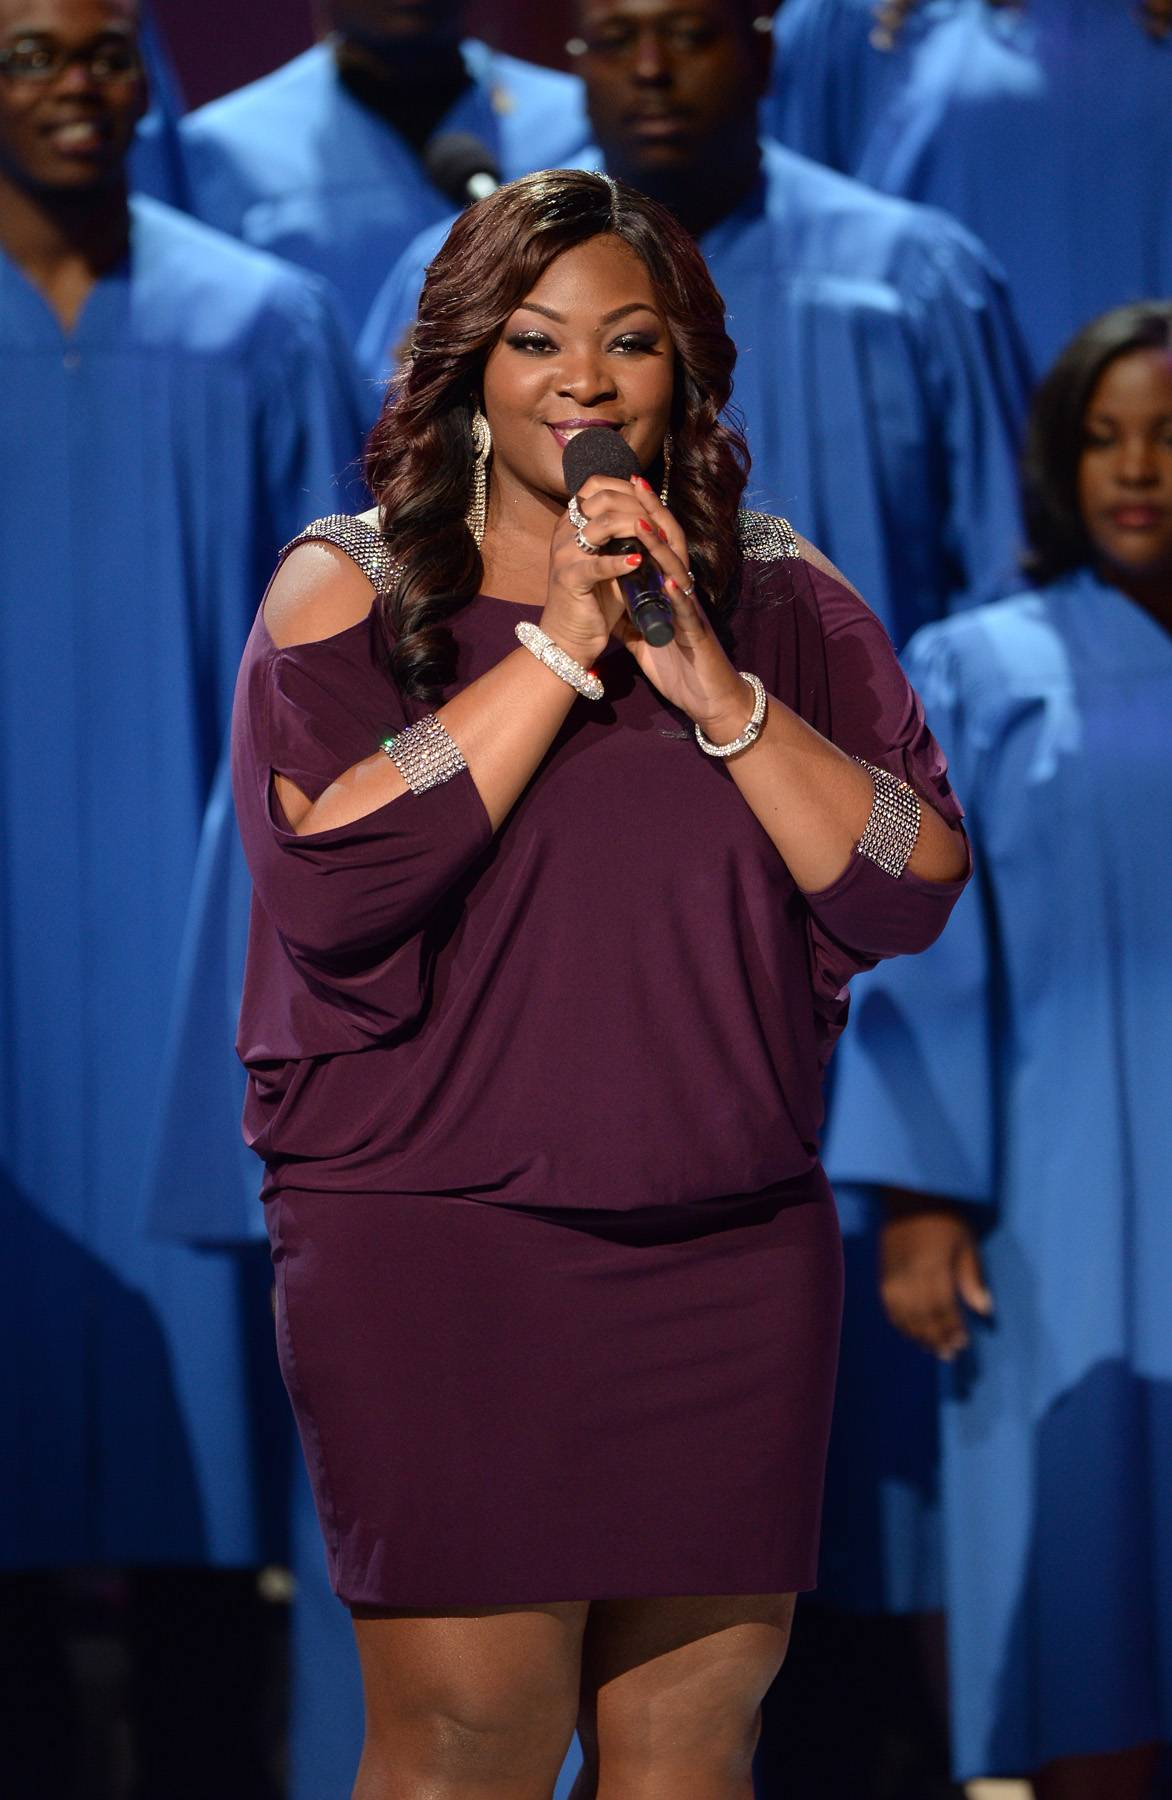 """Candice Gets It Right - American Idol winner Candice Glover showed us exactly why America fell in love with her on the show. The Music Speaks songstress sang her heart out while performing """"Center of My Joy"""" in tribute to Richard Smallwood.(Photo: Jason Kempin/Getty Images for BET)"""